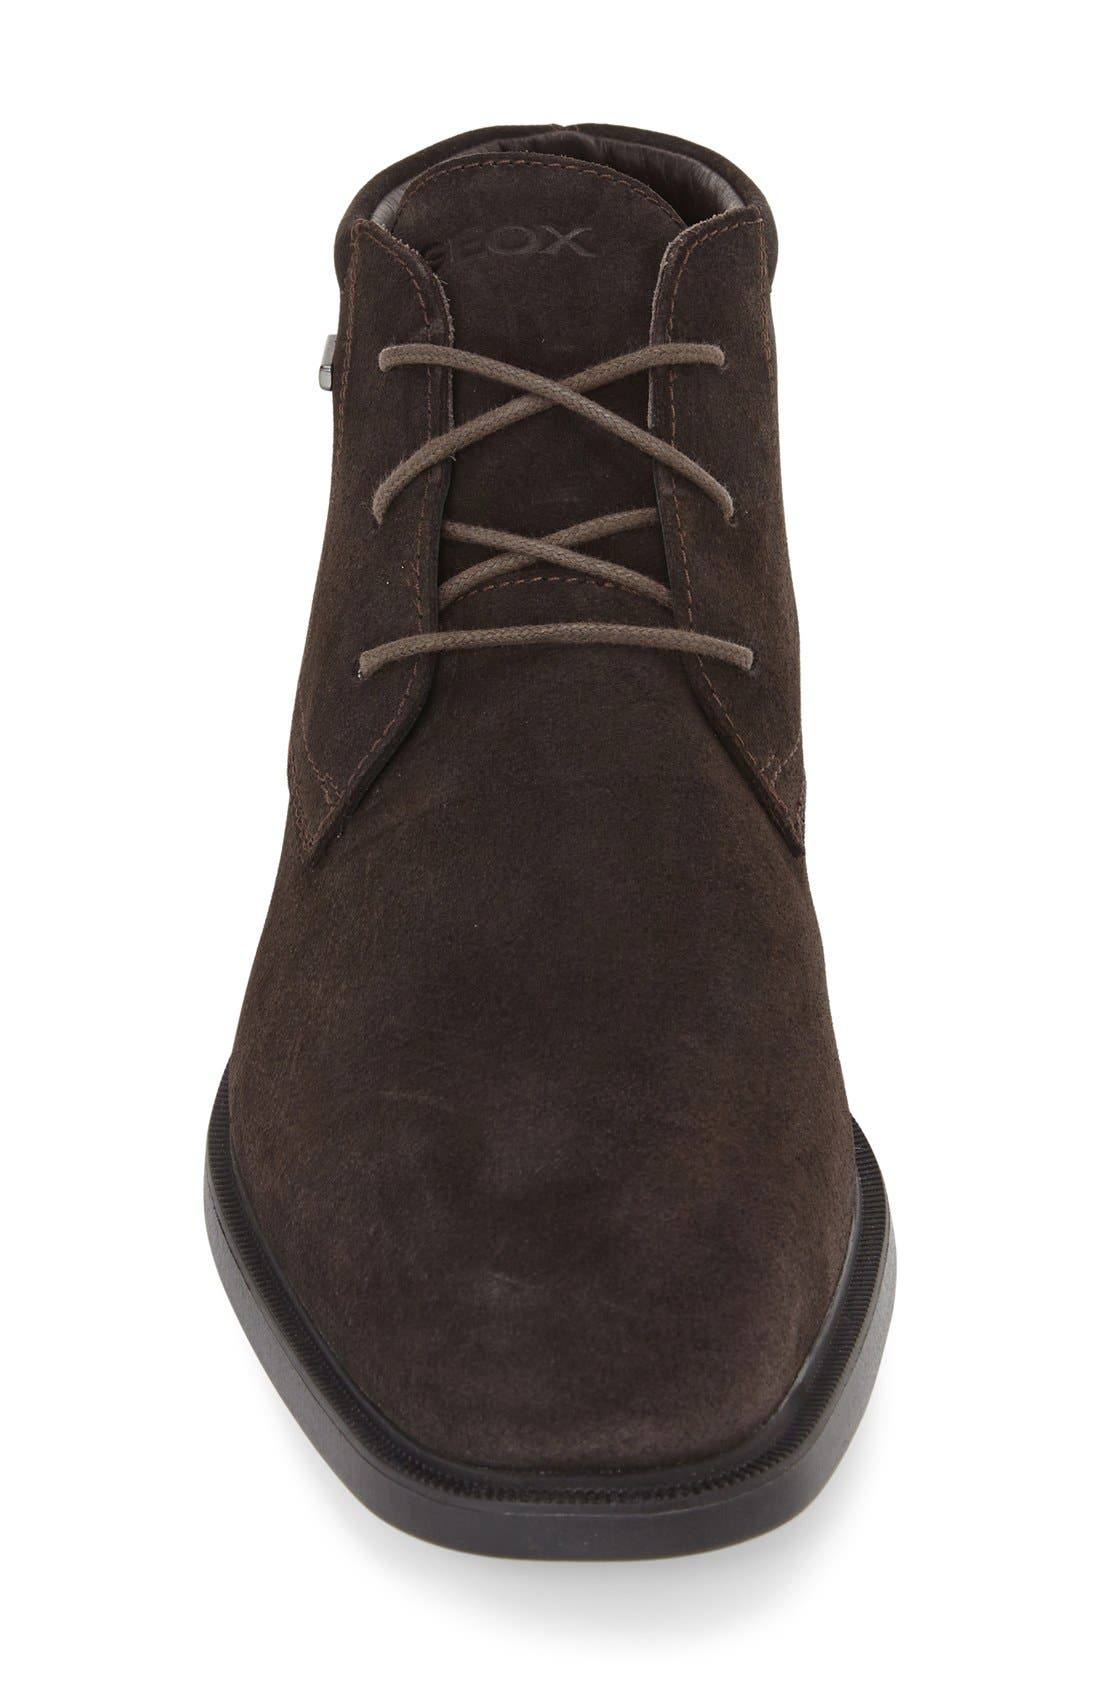 'Brayden - ABX' Amphibiox<sup>®</sup> Waterproof Oxford,                             Alternate thumbnail 3, color,                             COFFEE